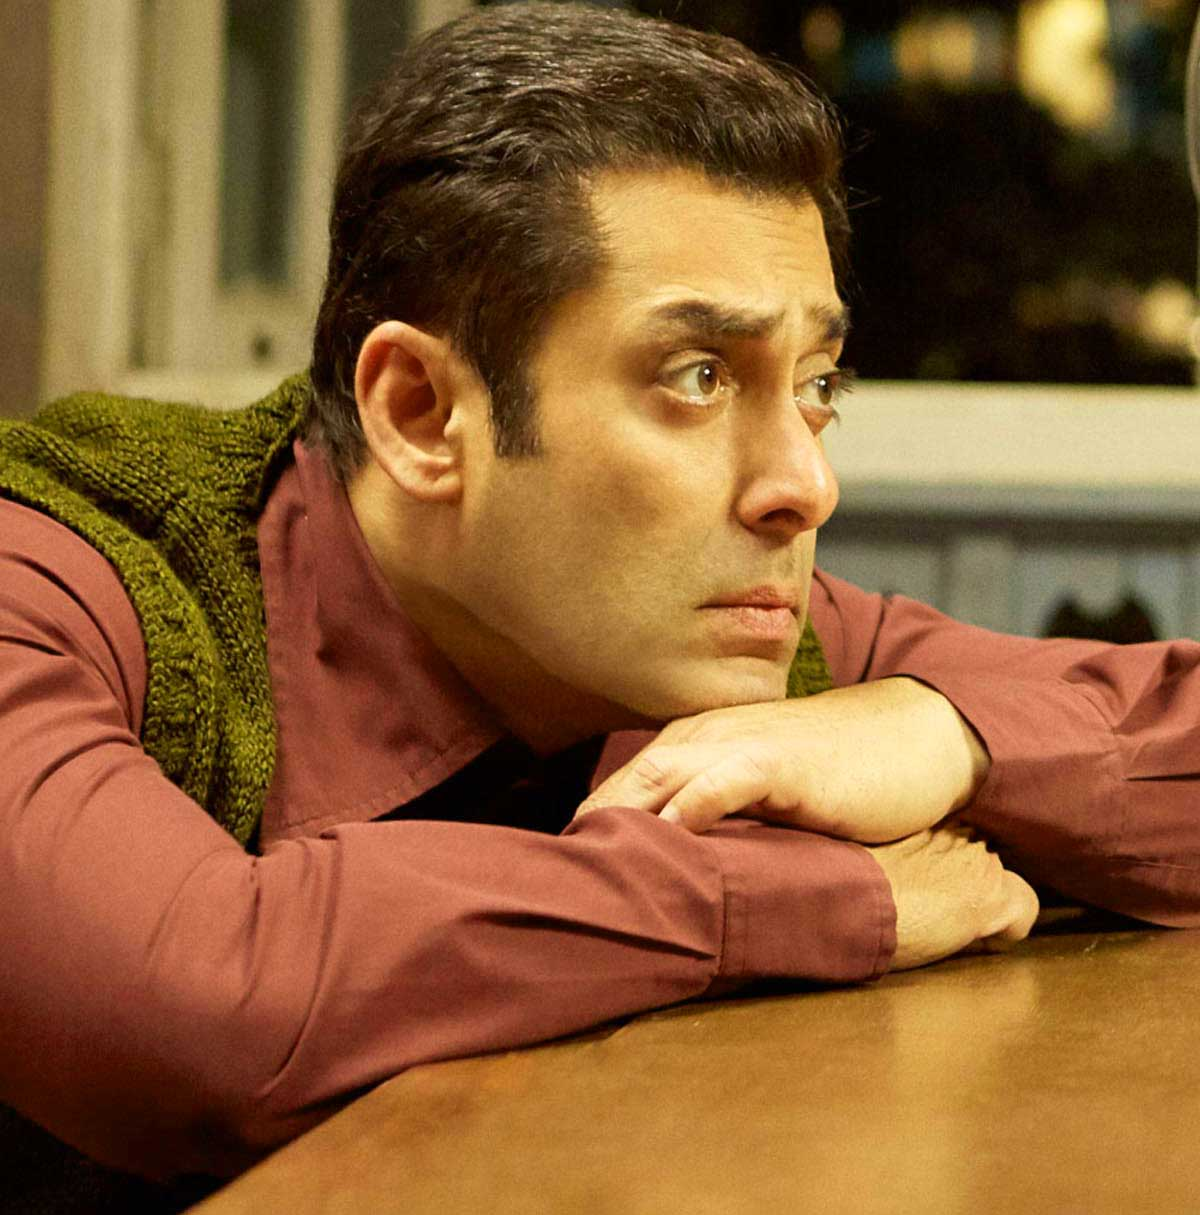 Salman Khan Images HD Free 72